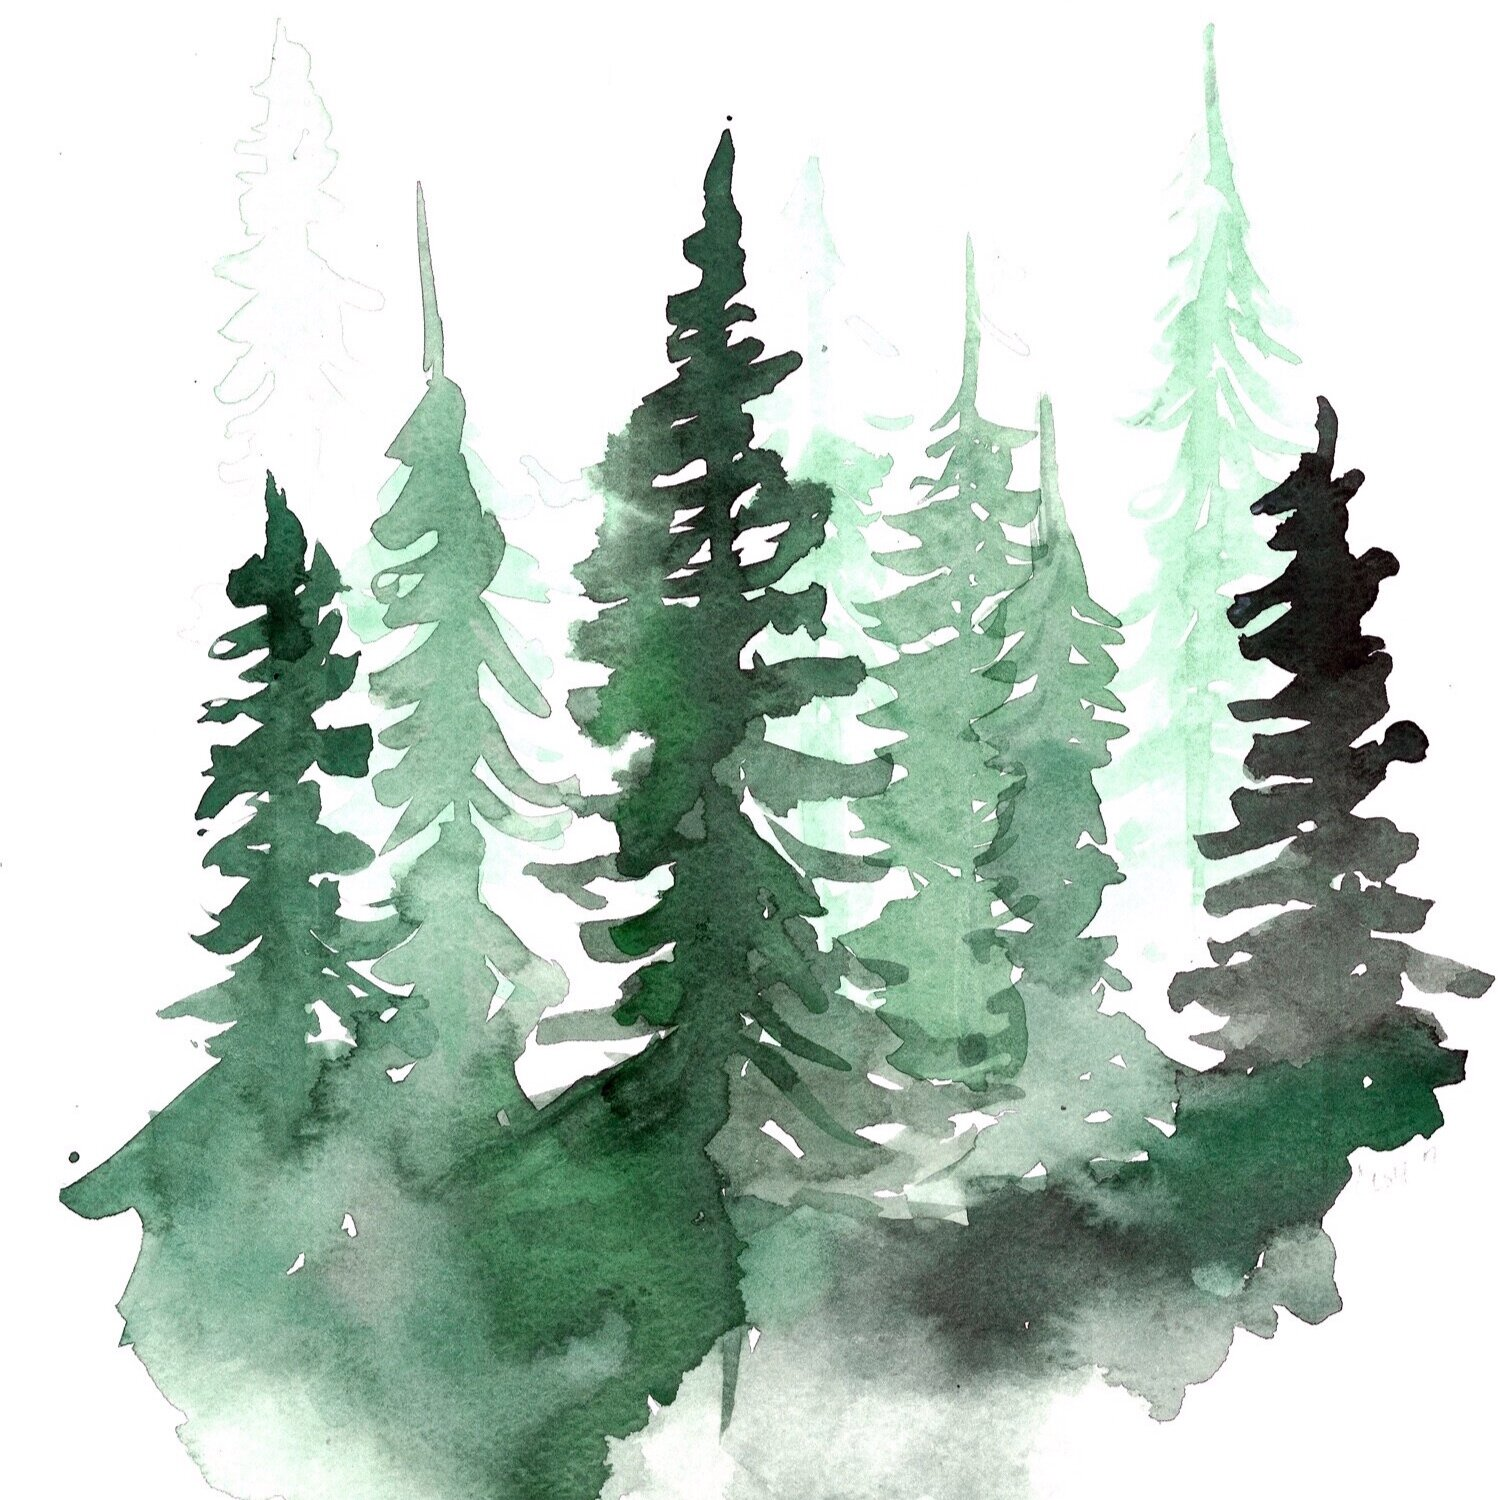 watercolor-pine-trees-lacottfineart.jpg